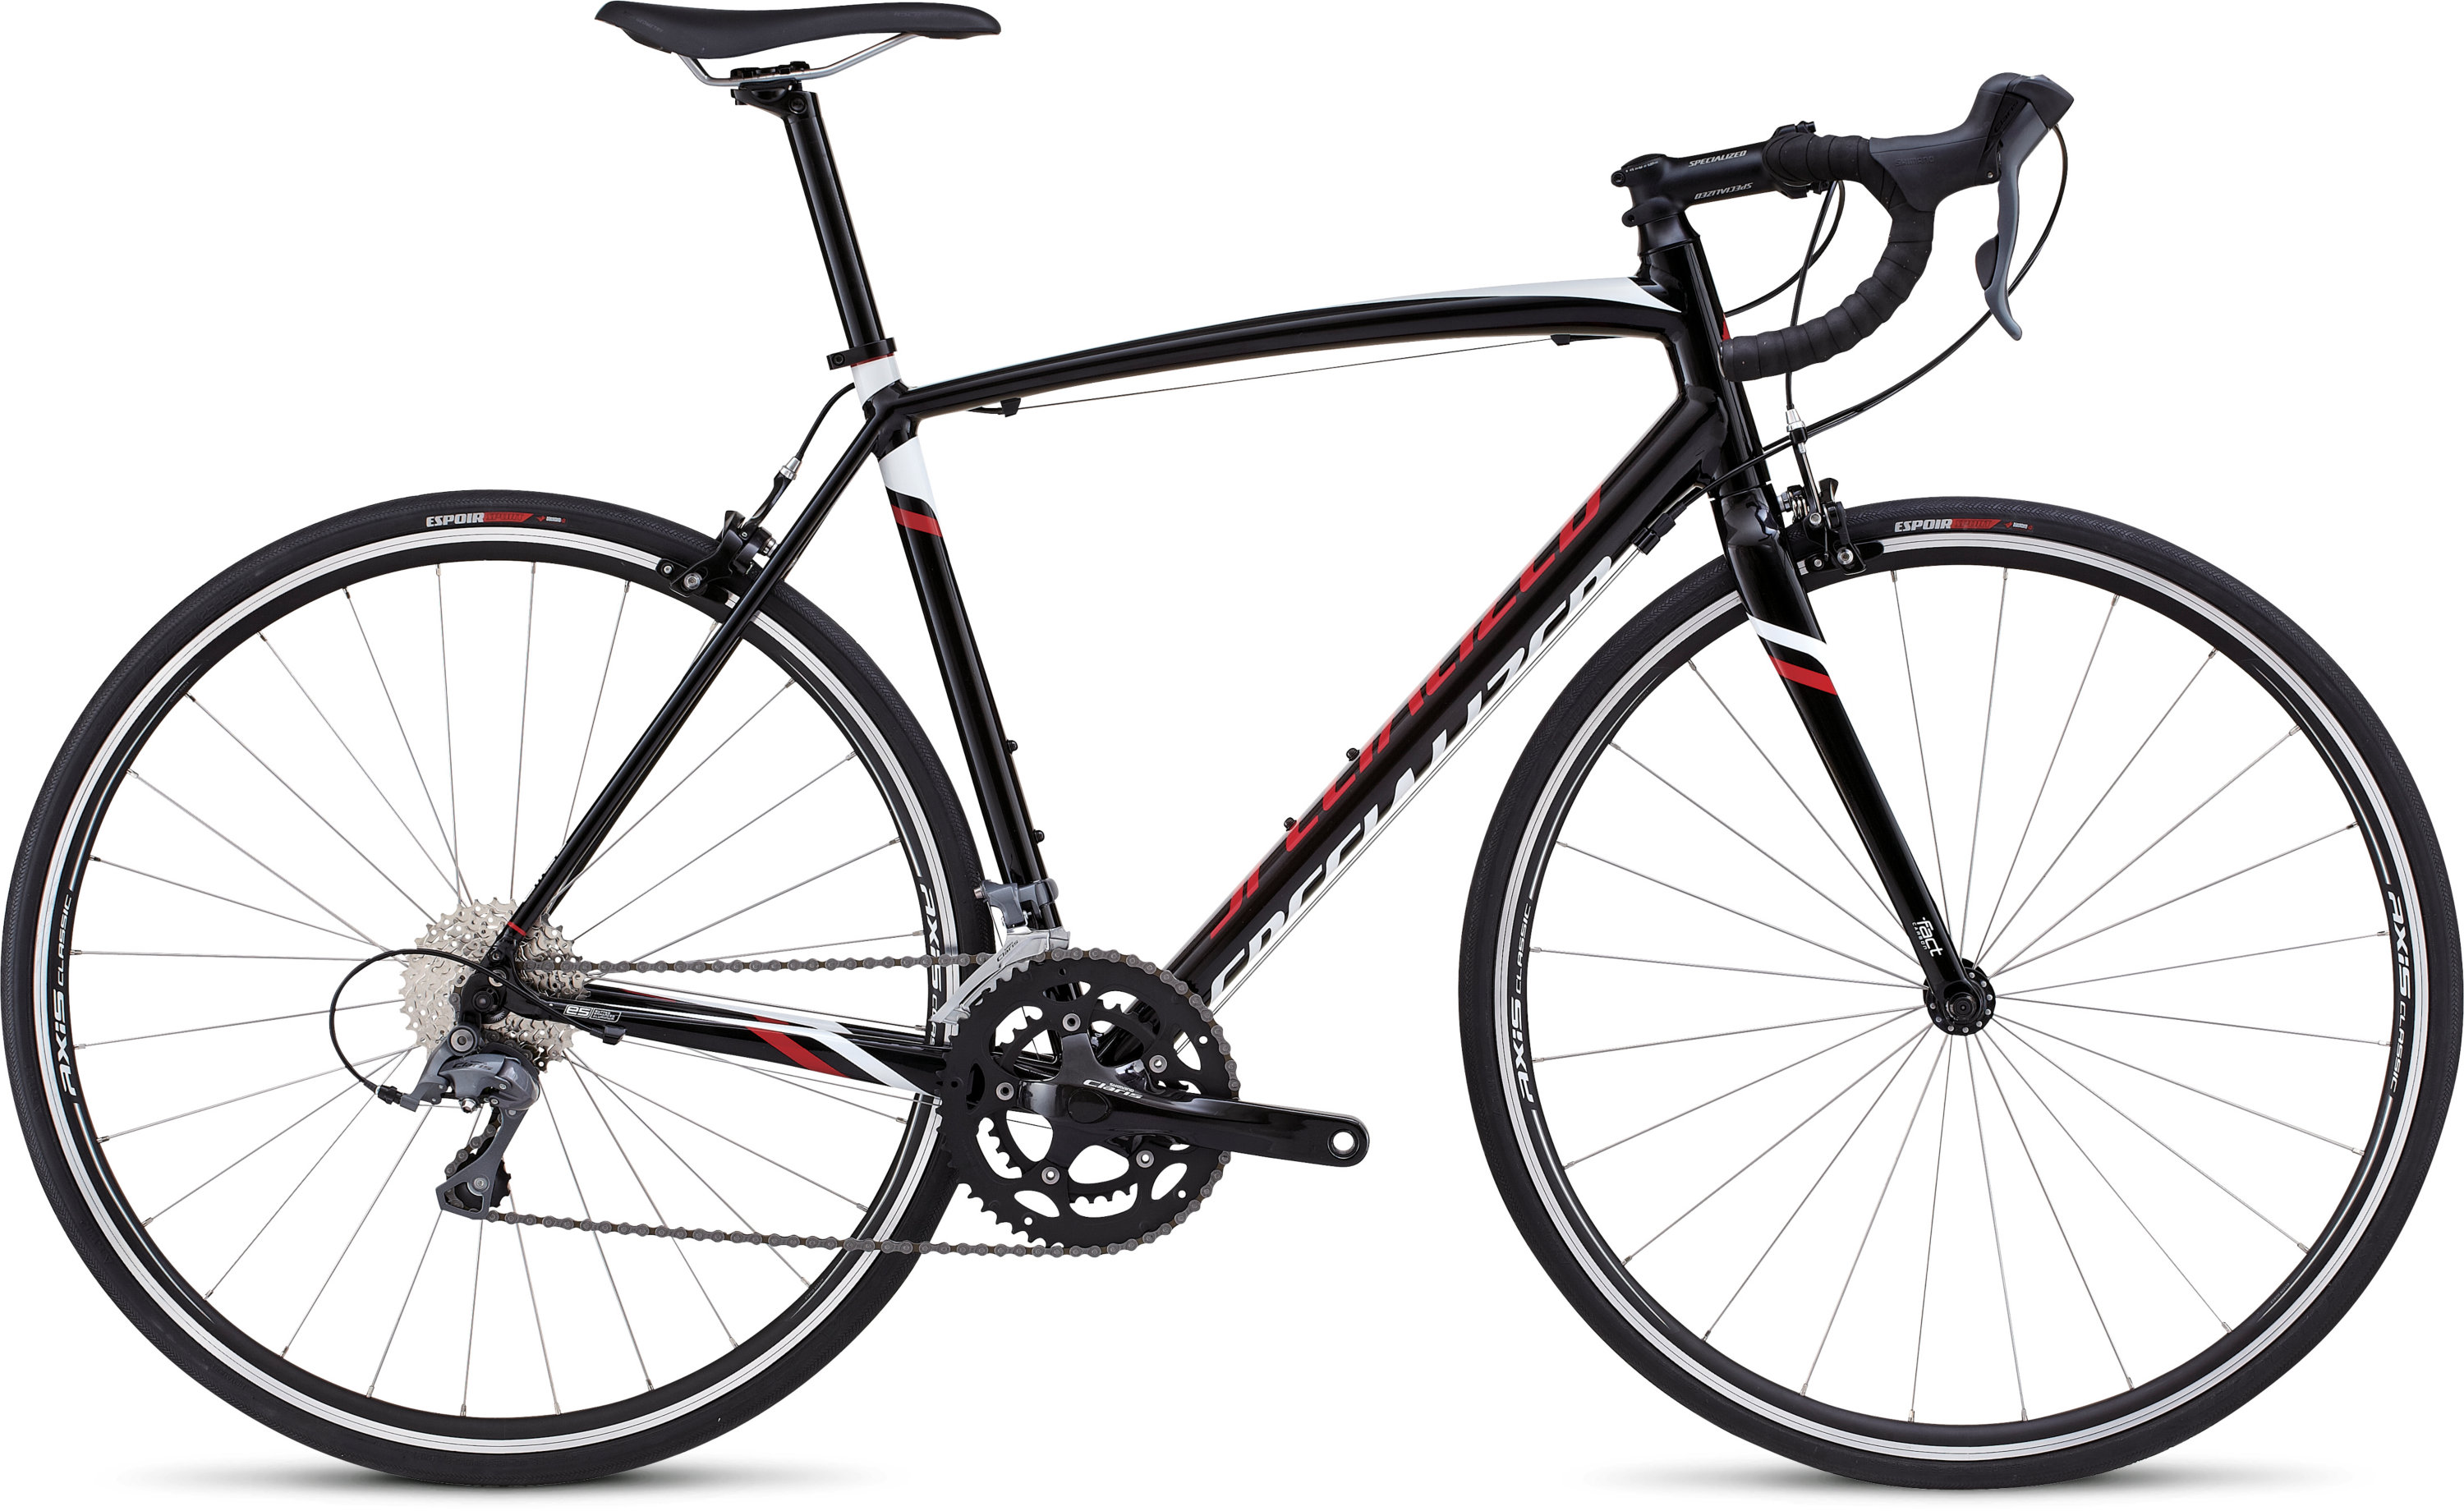 SPECIALIZED ALLEZ TARBLK/WHT/RED 52 - SPECIALIZED ALLEZ TARBLK/WHT/RED 52